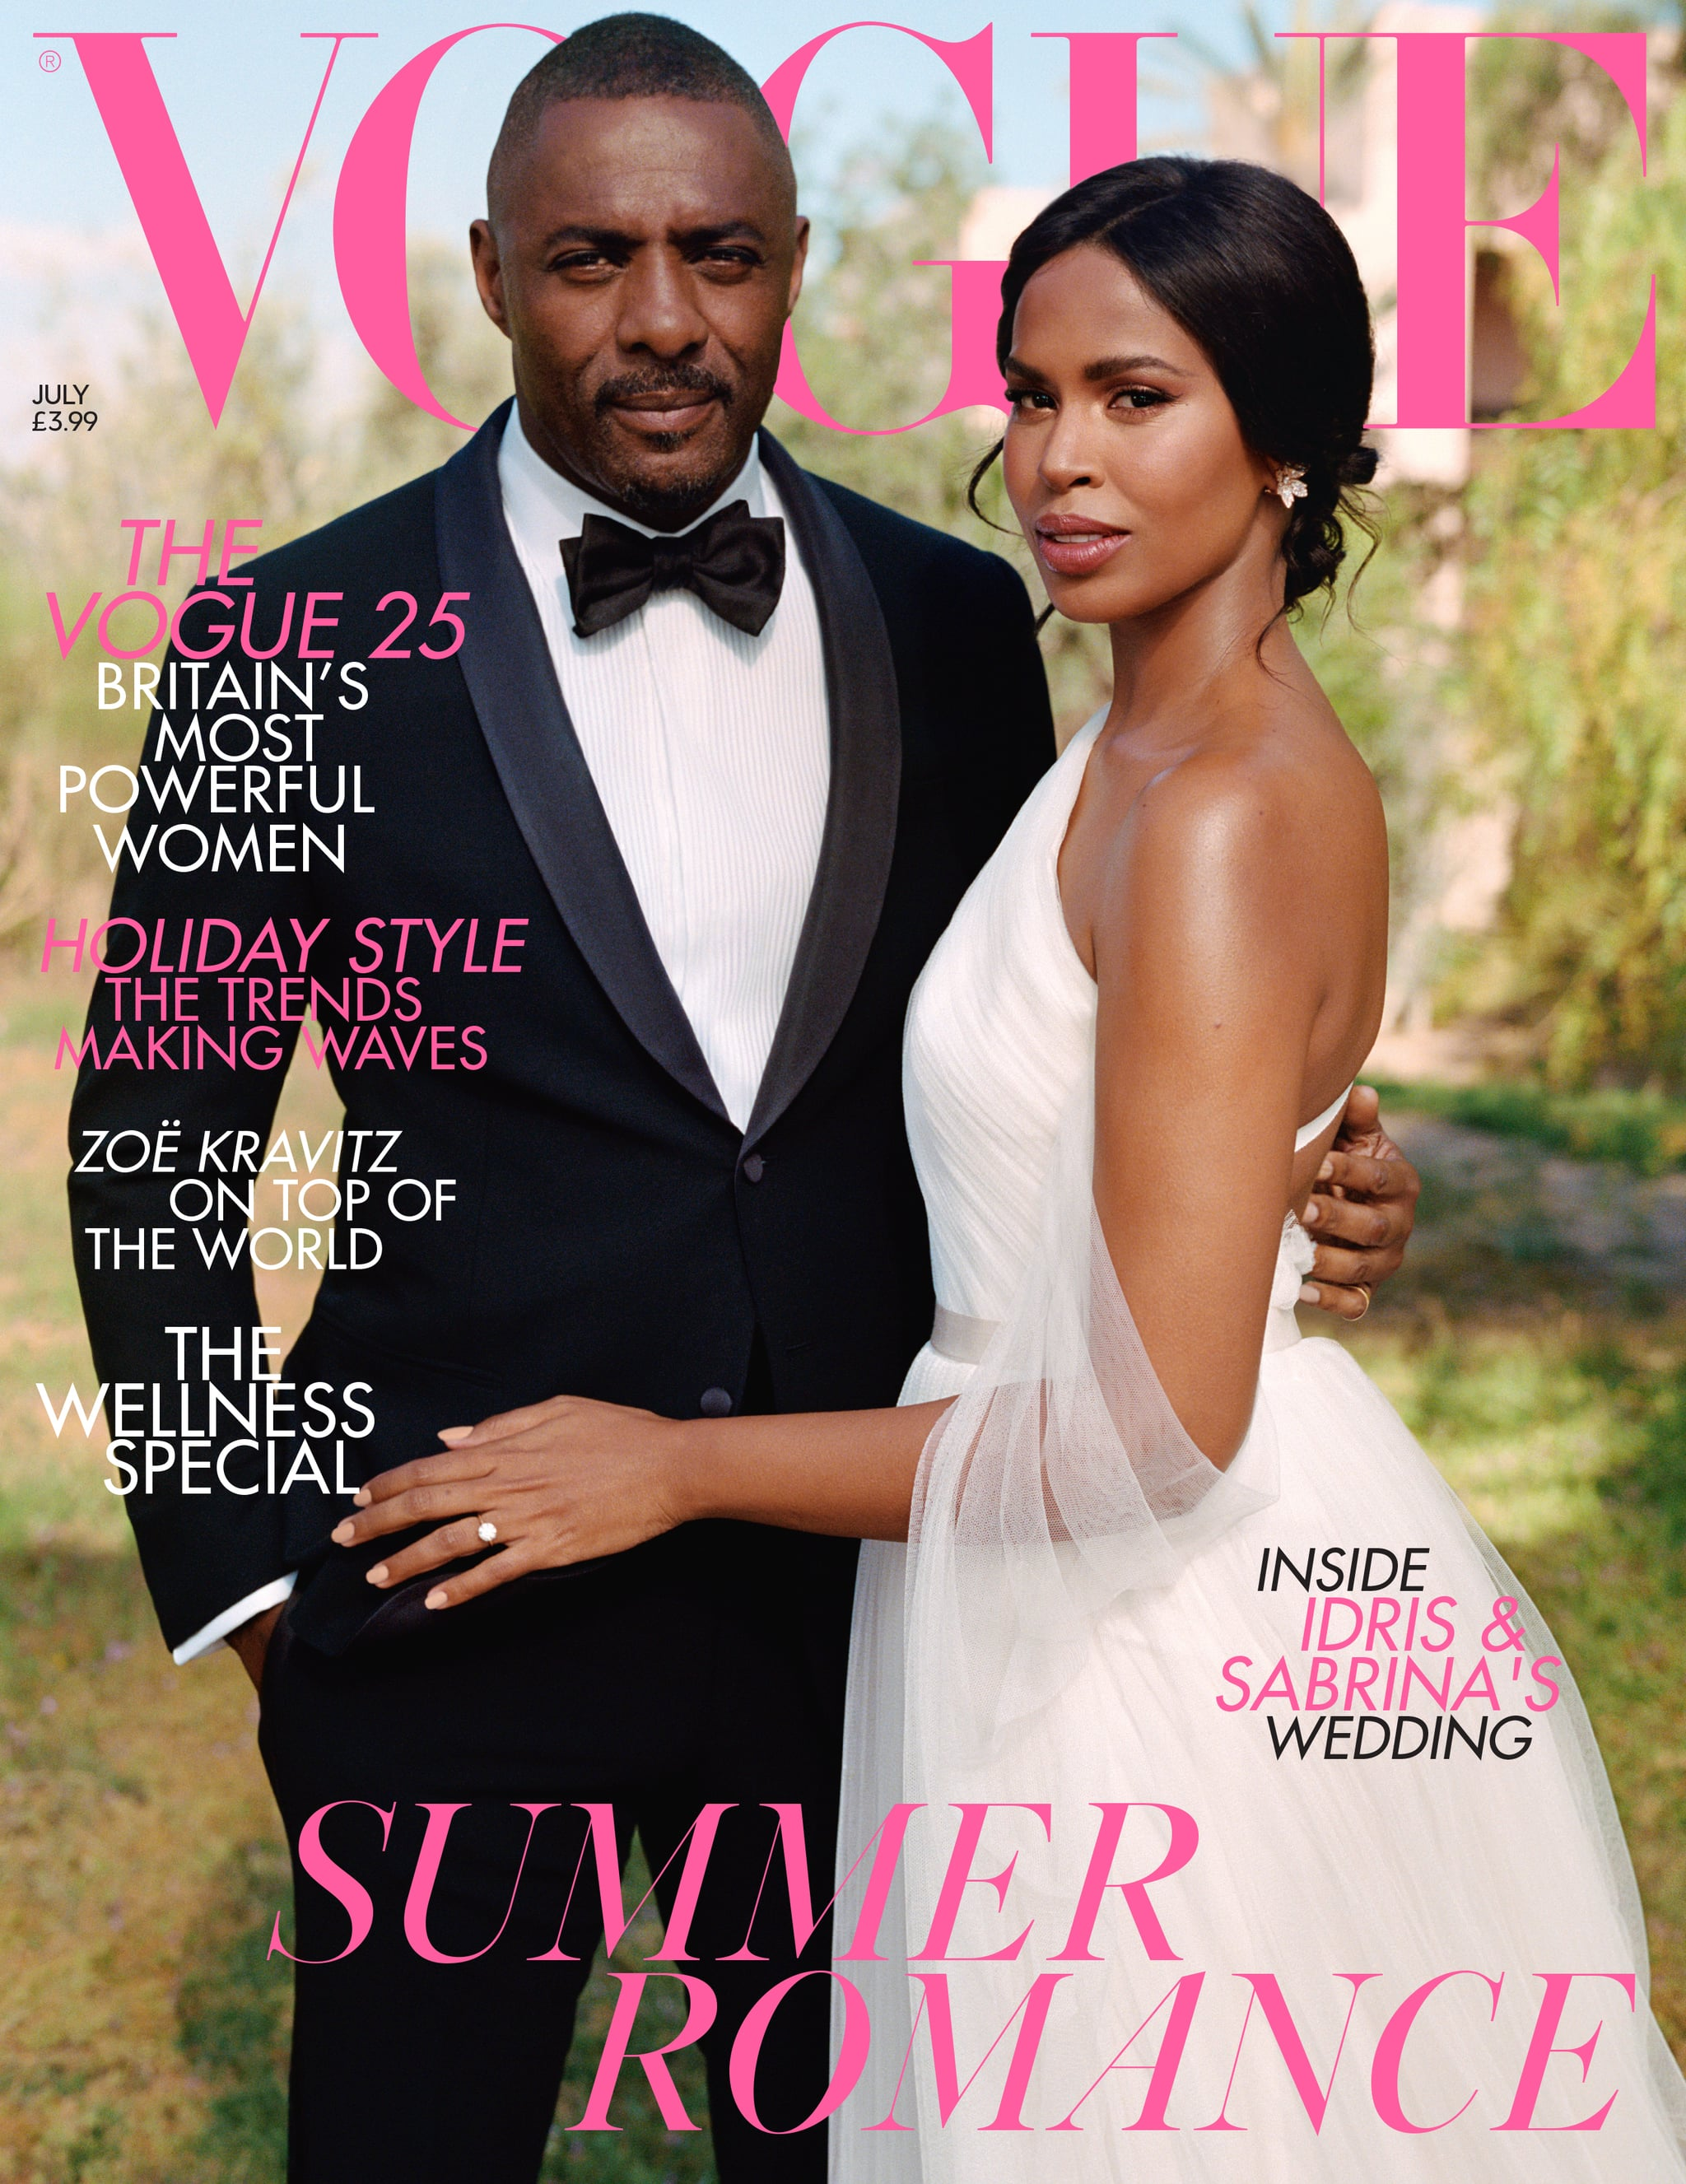 Idris Elba and Sabrina Dhowre Cover British Vogue With a Seriously Stunning Wedding Photo